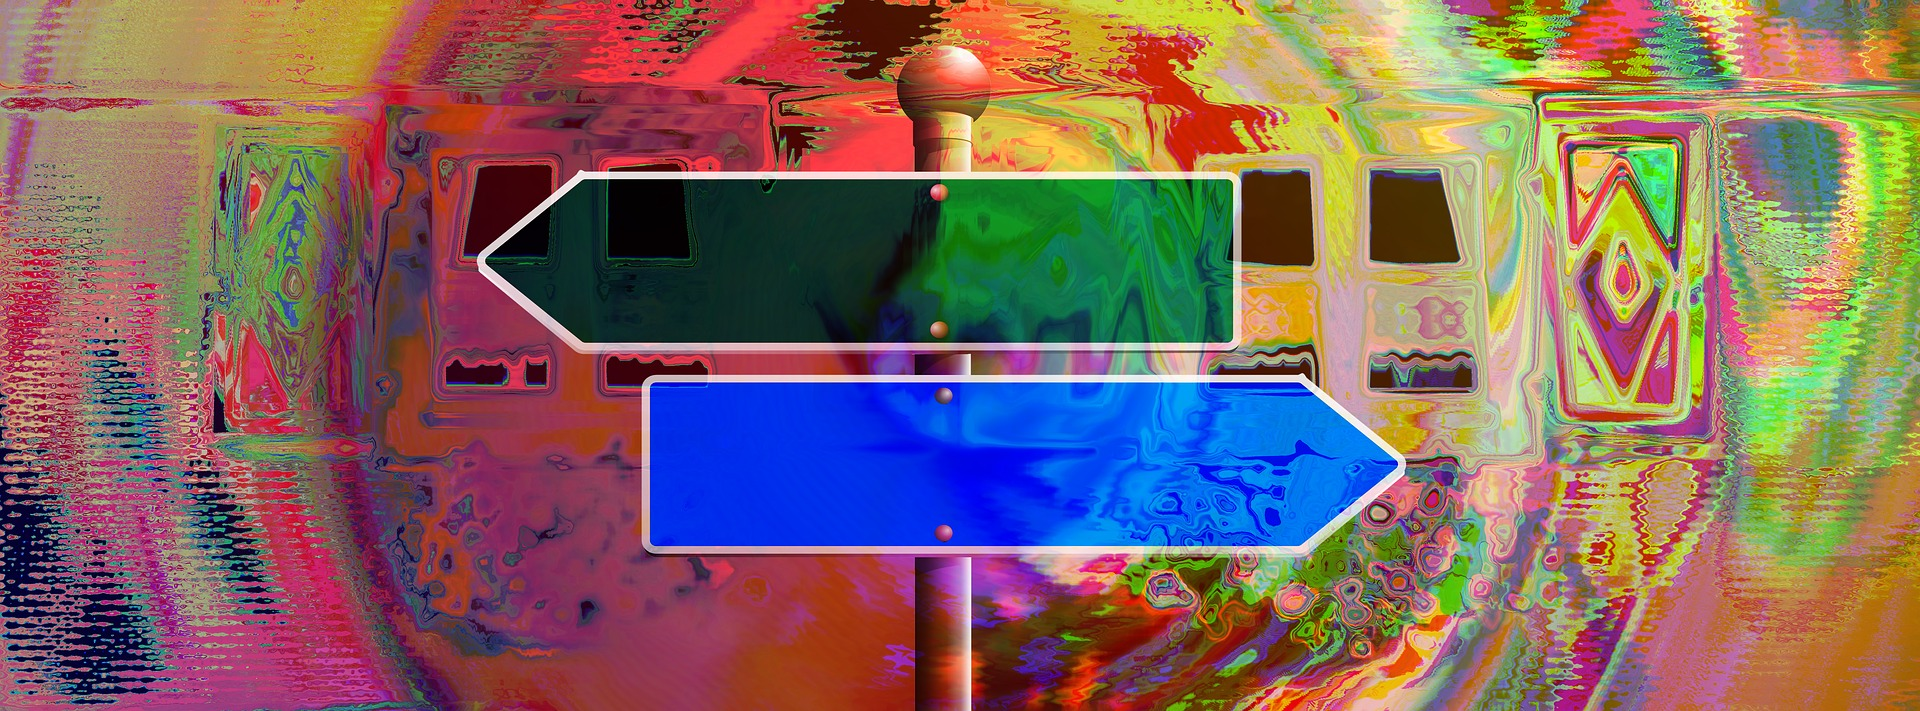 Colorful road sign banner photo for about page